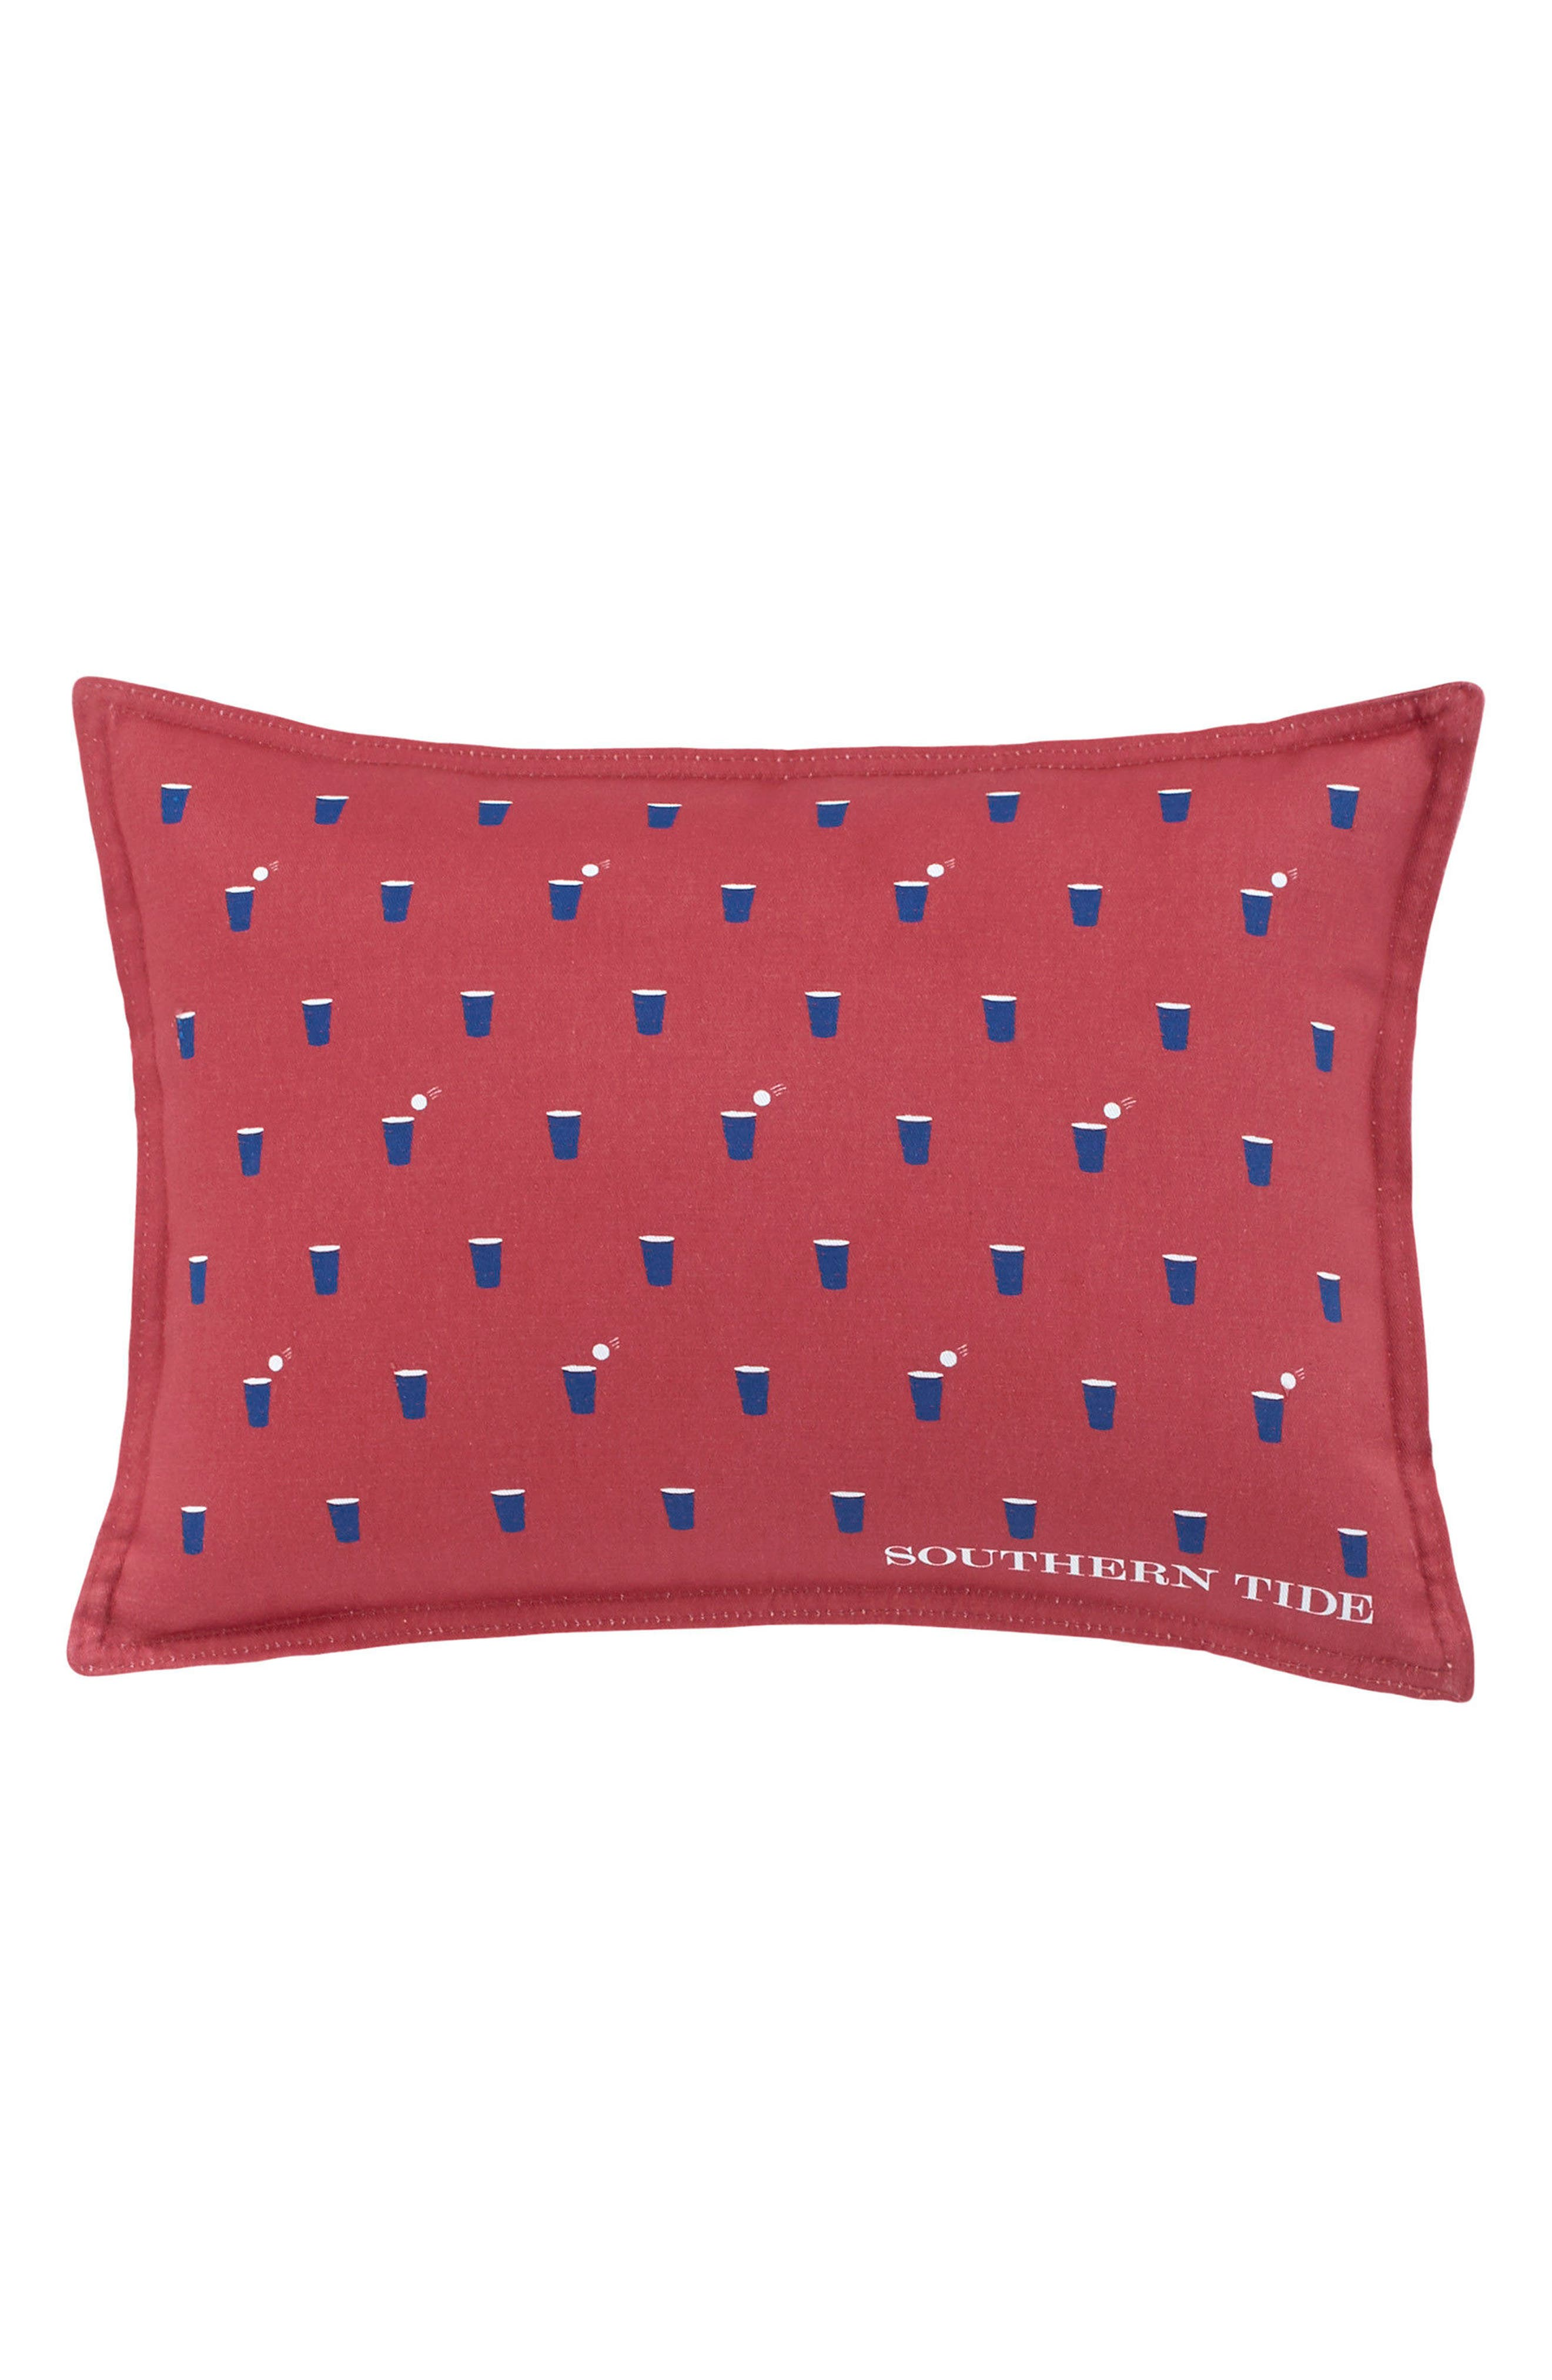 Southern Tide Skipjack Chino Happy Hour Accent Pillow